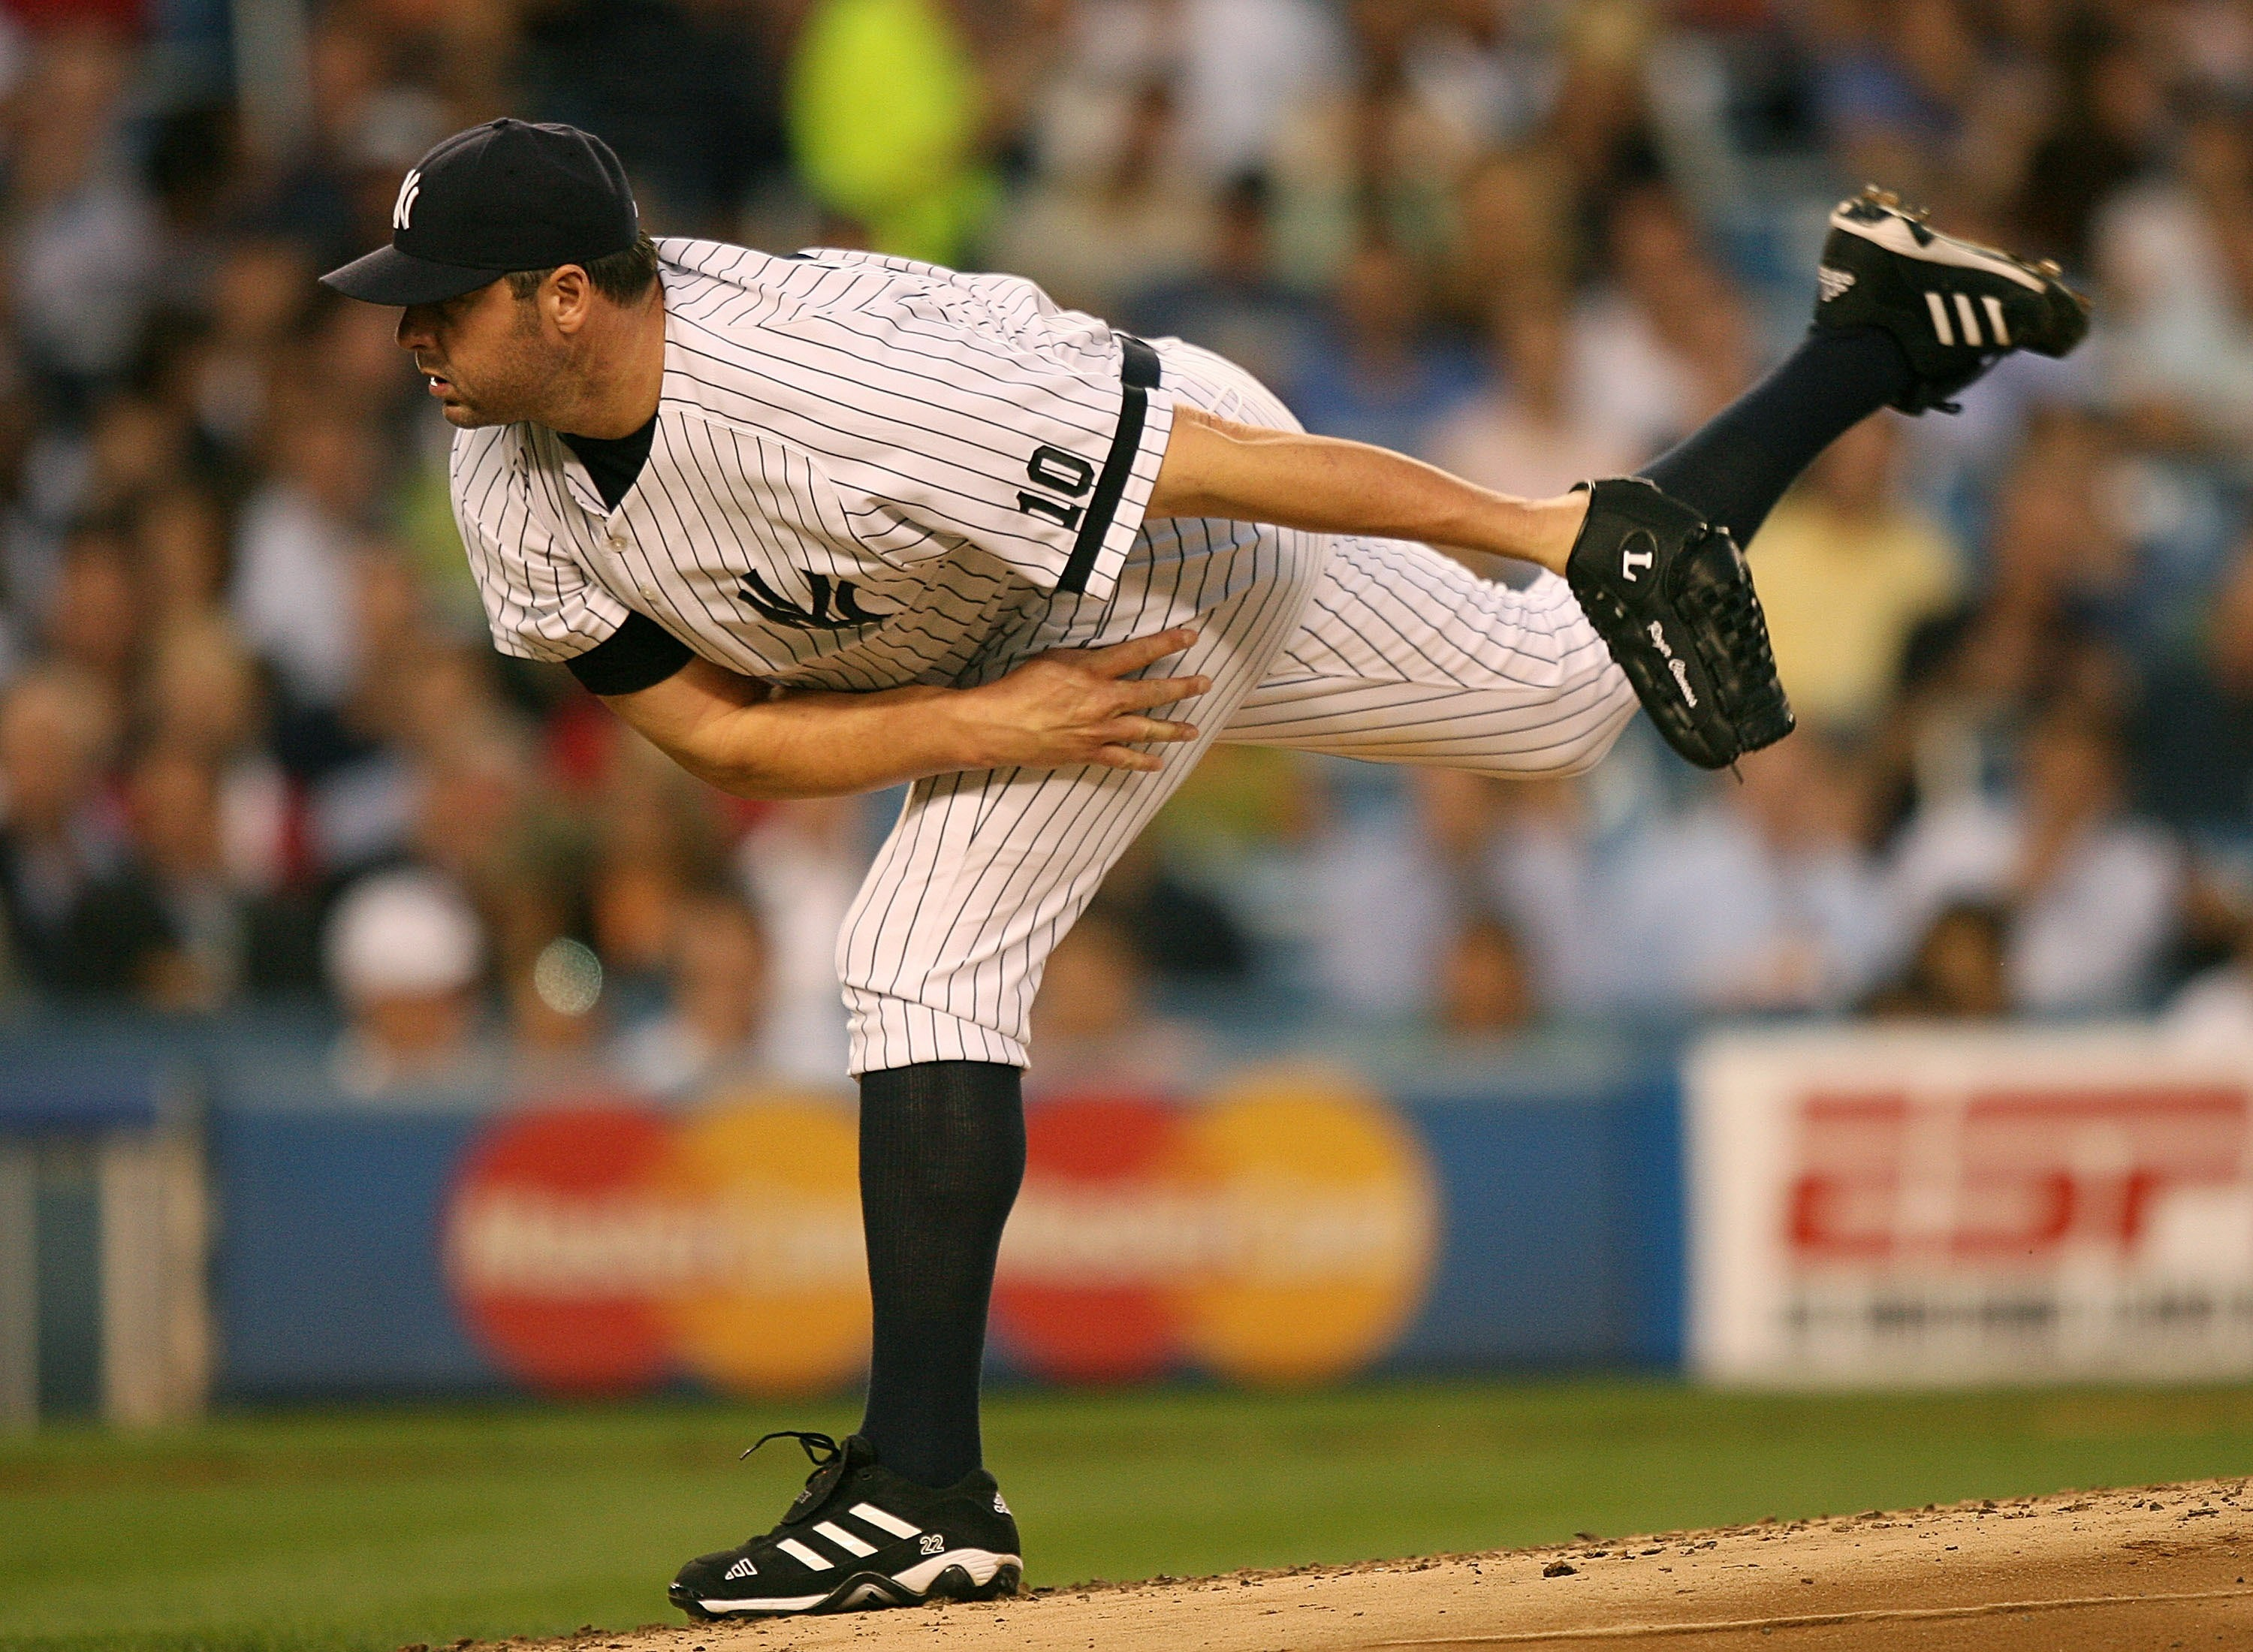 NEW YORK - AUGUST 29:  Pitcher Roger Clemens #22 of the New York Yankees pitches during a game against the Boston Red Sox on August 29, 2007 at Yankee Stadium in the Bronx borough of New York City.  (Photo by Mike Ehrmann/Getty Images)